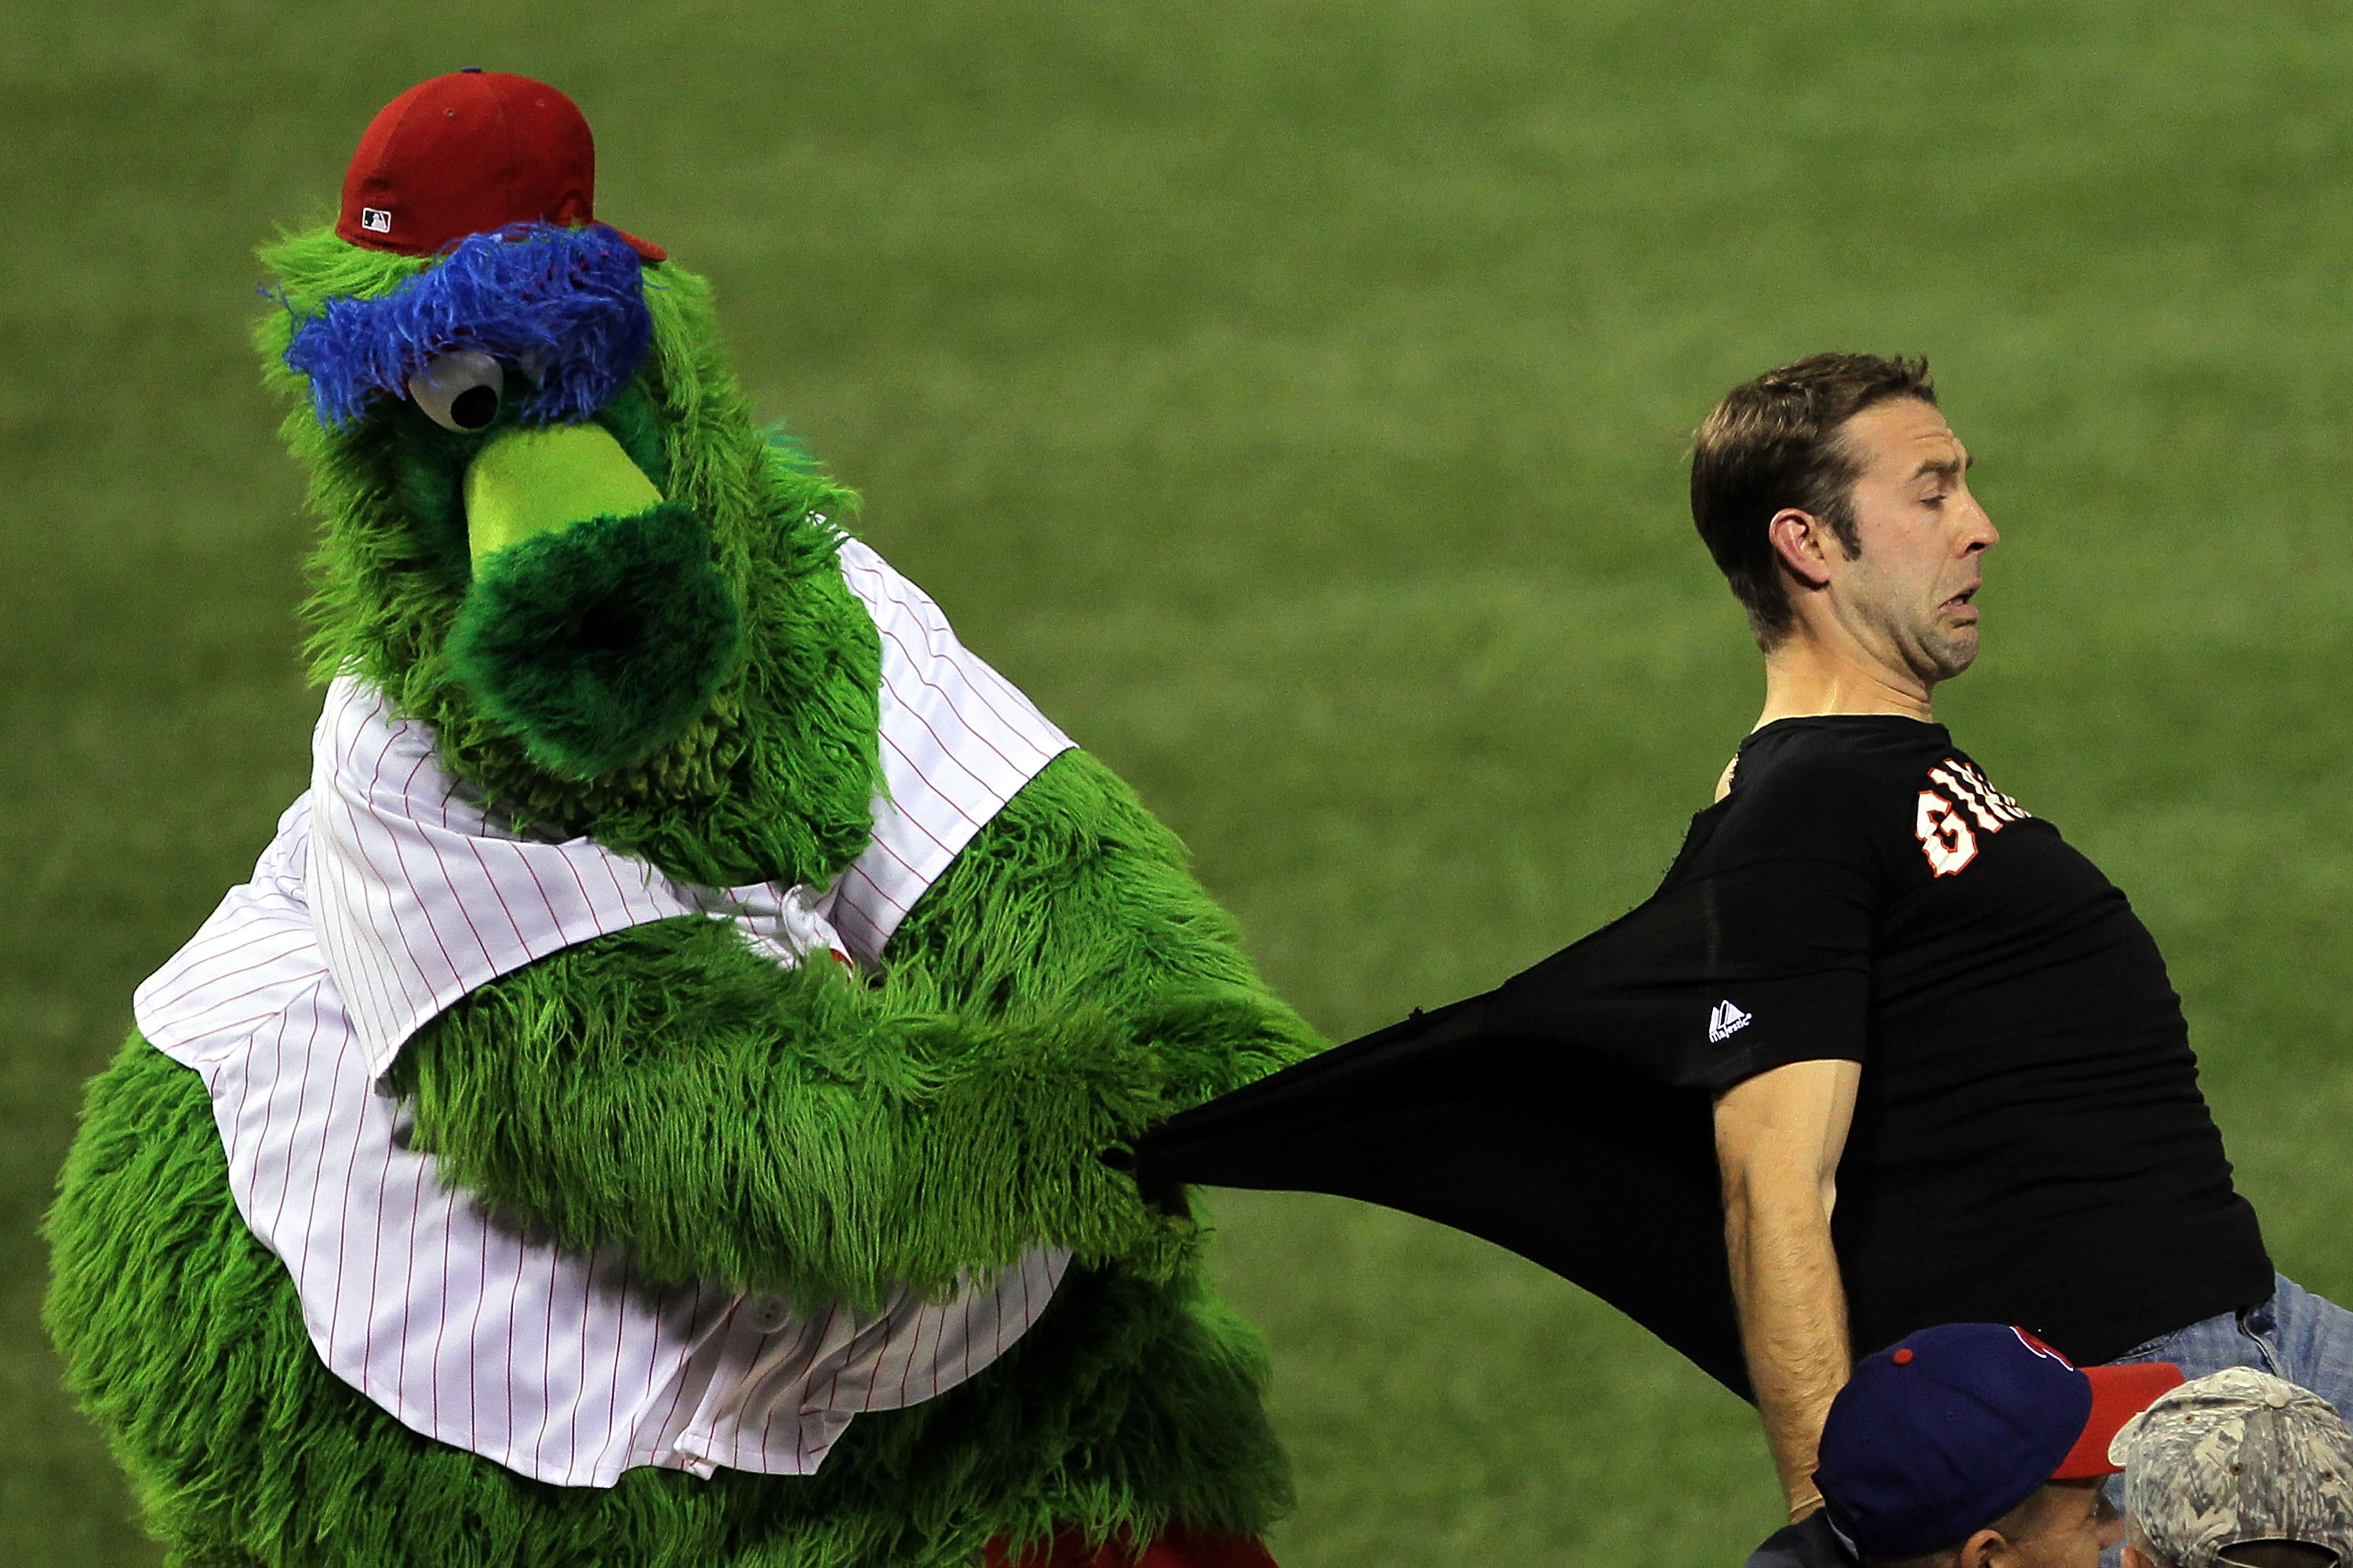 PHILADELPHIA - OCTOBER 16:  The Phillie Phanatic performs during Game One of the NLCS during the 2010 MLB Playoffs between the Philadelphia Phillies and the San Francisco Giants at Citizens Bank Park on October 16, 2010 in Philadelphia, Pennsylvania.  (Ph